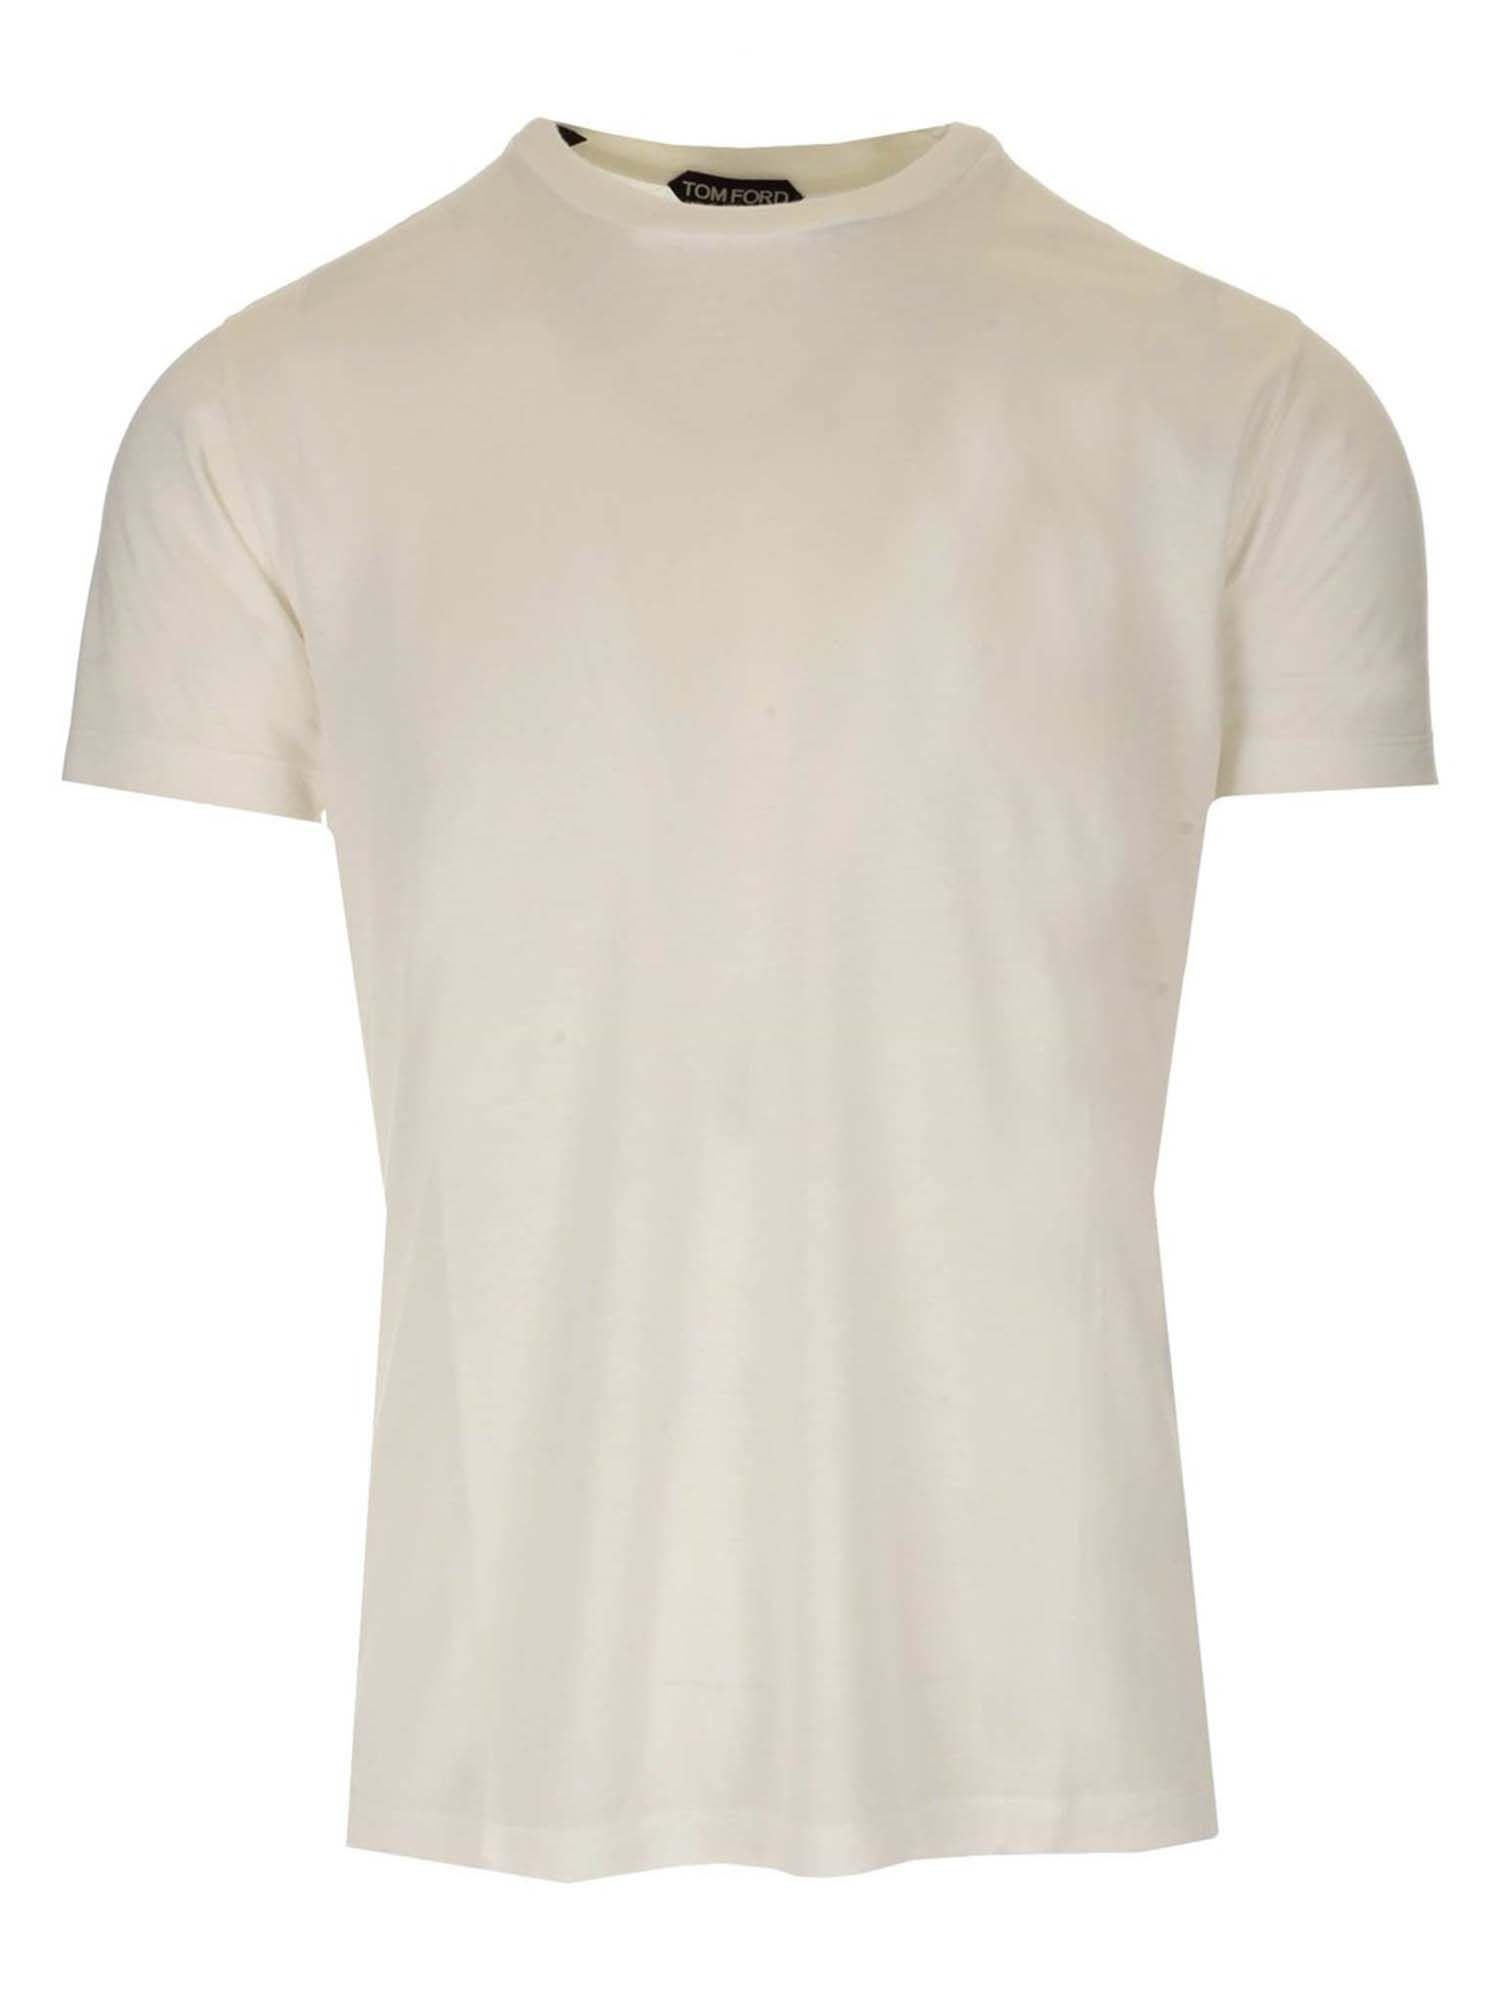 Tom Ford T-shirts CREWNECK T-SHIRT IN WHITE